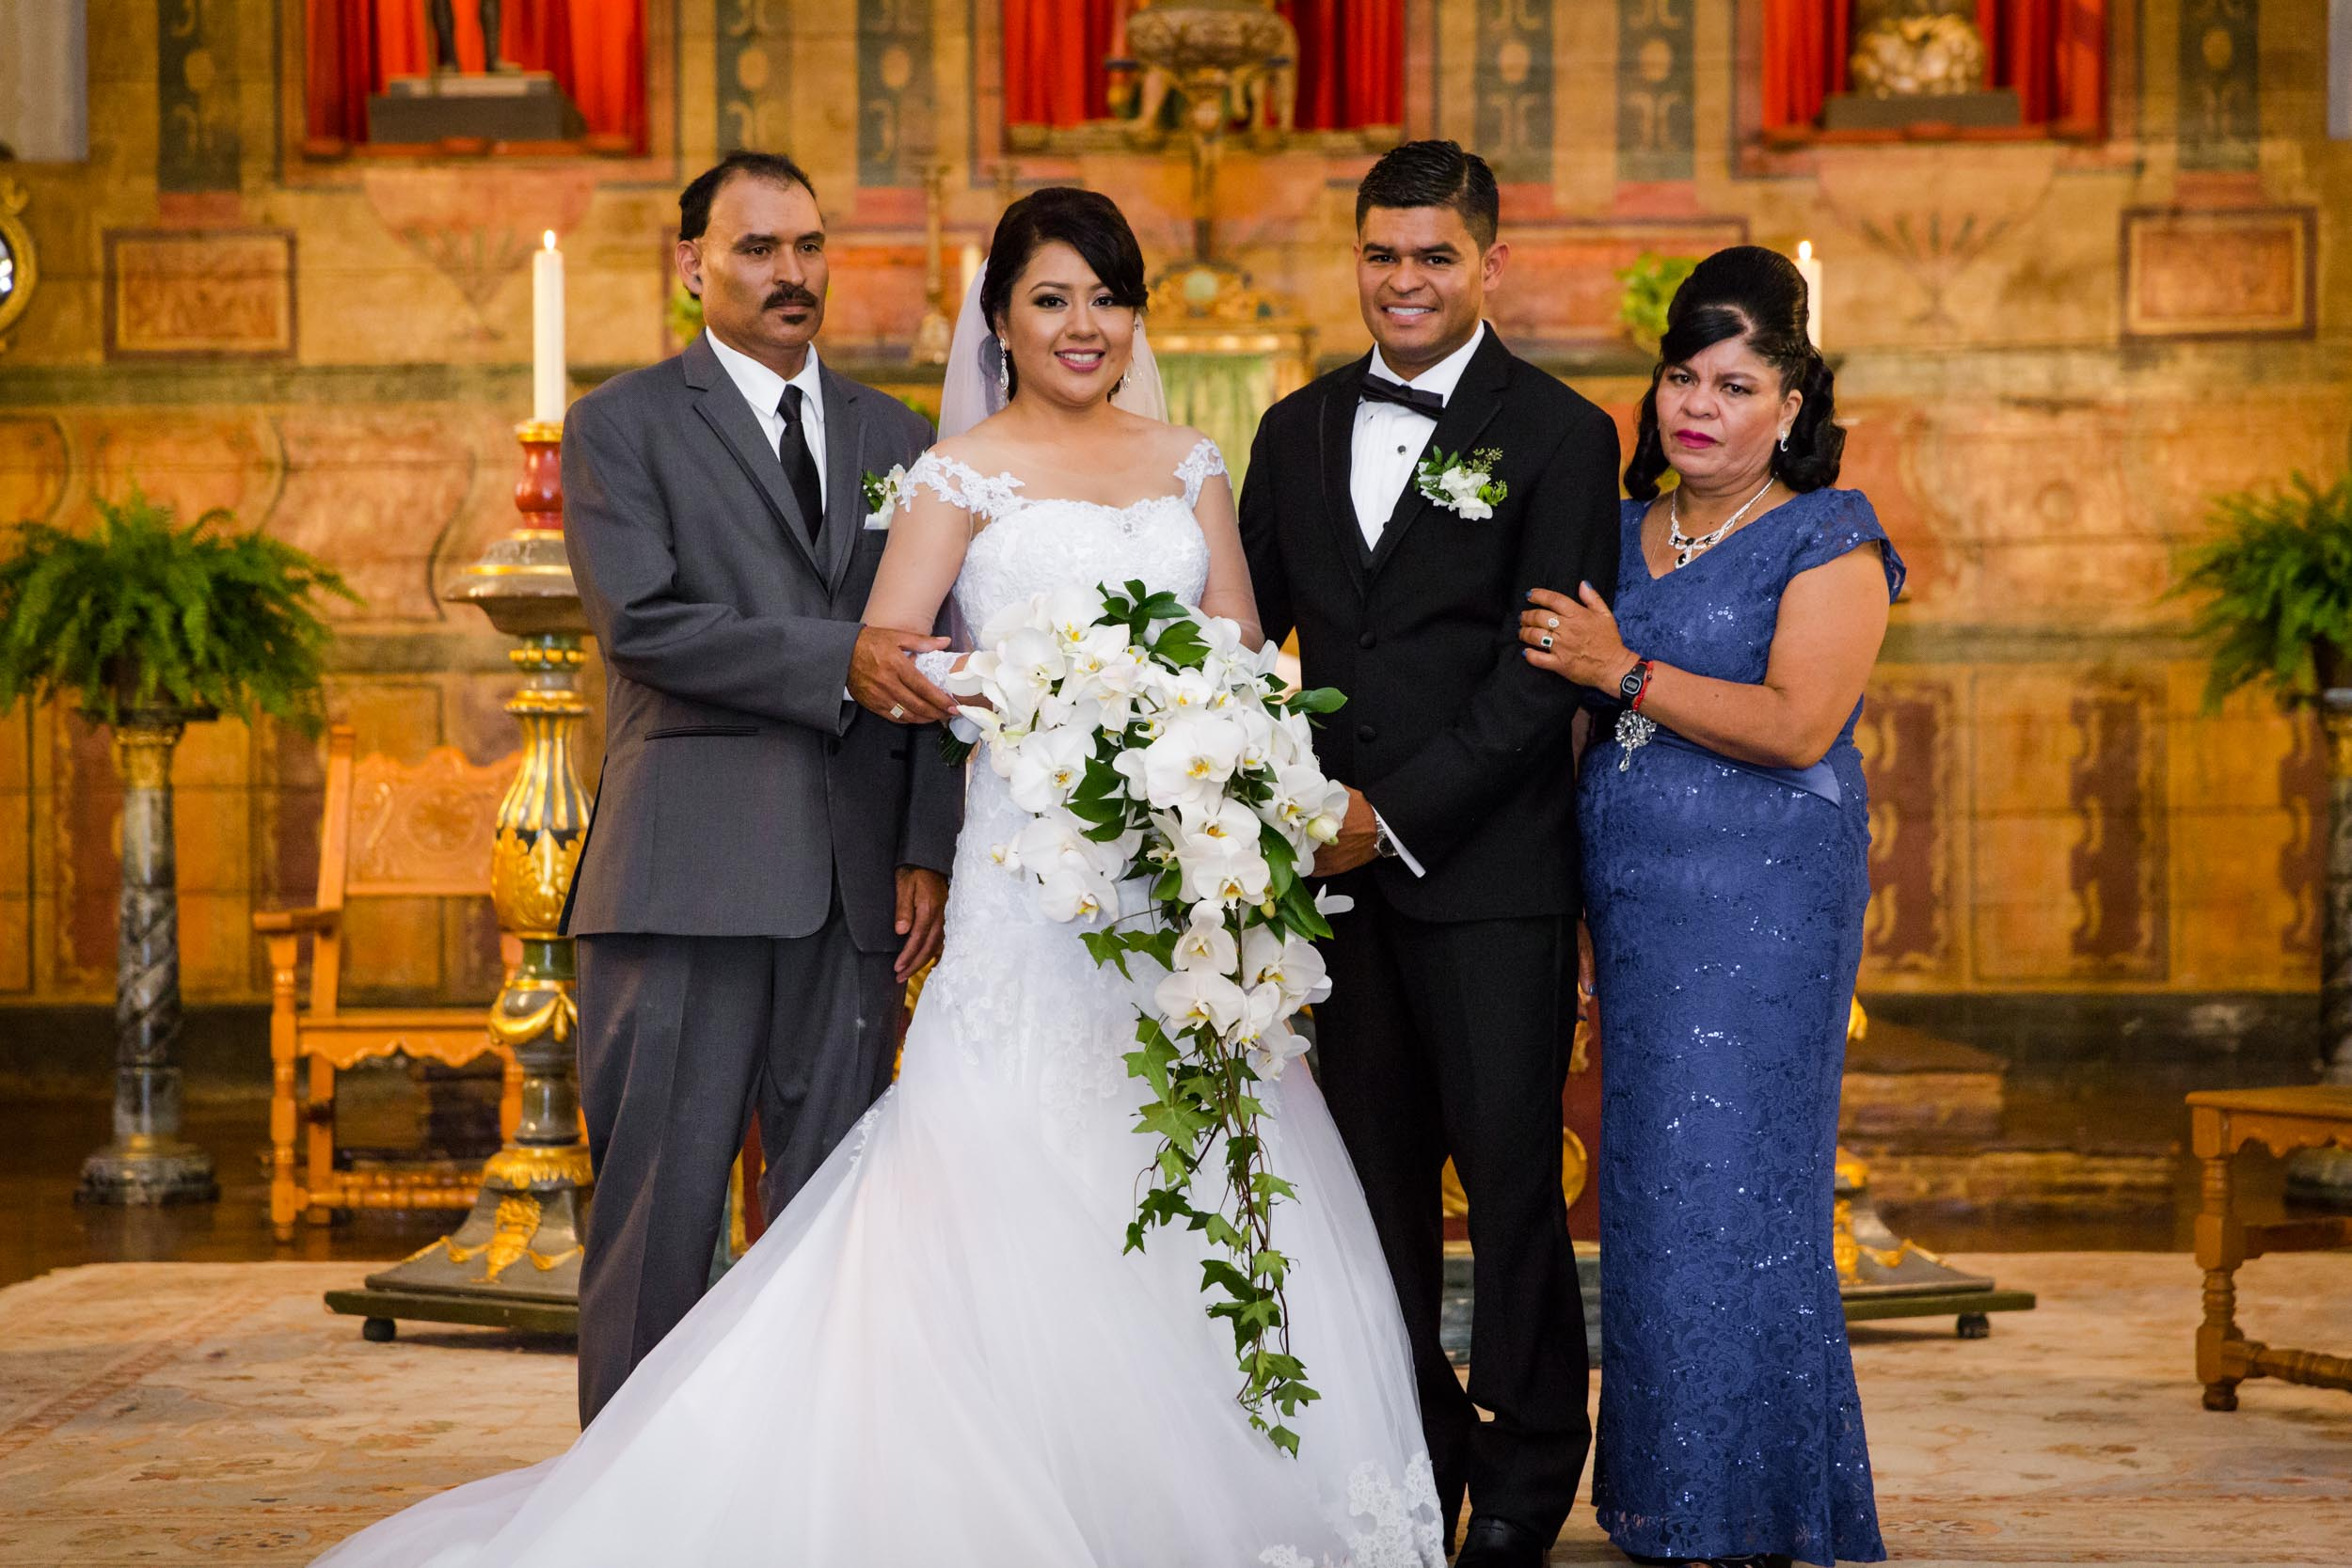 Our Wedding-299